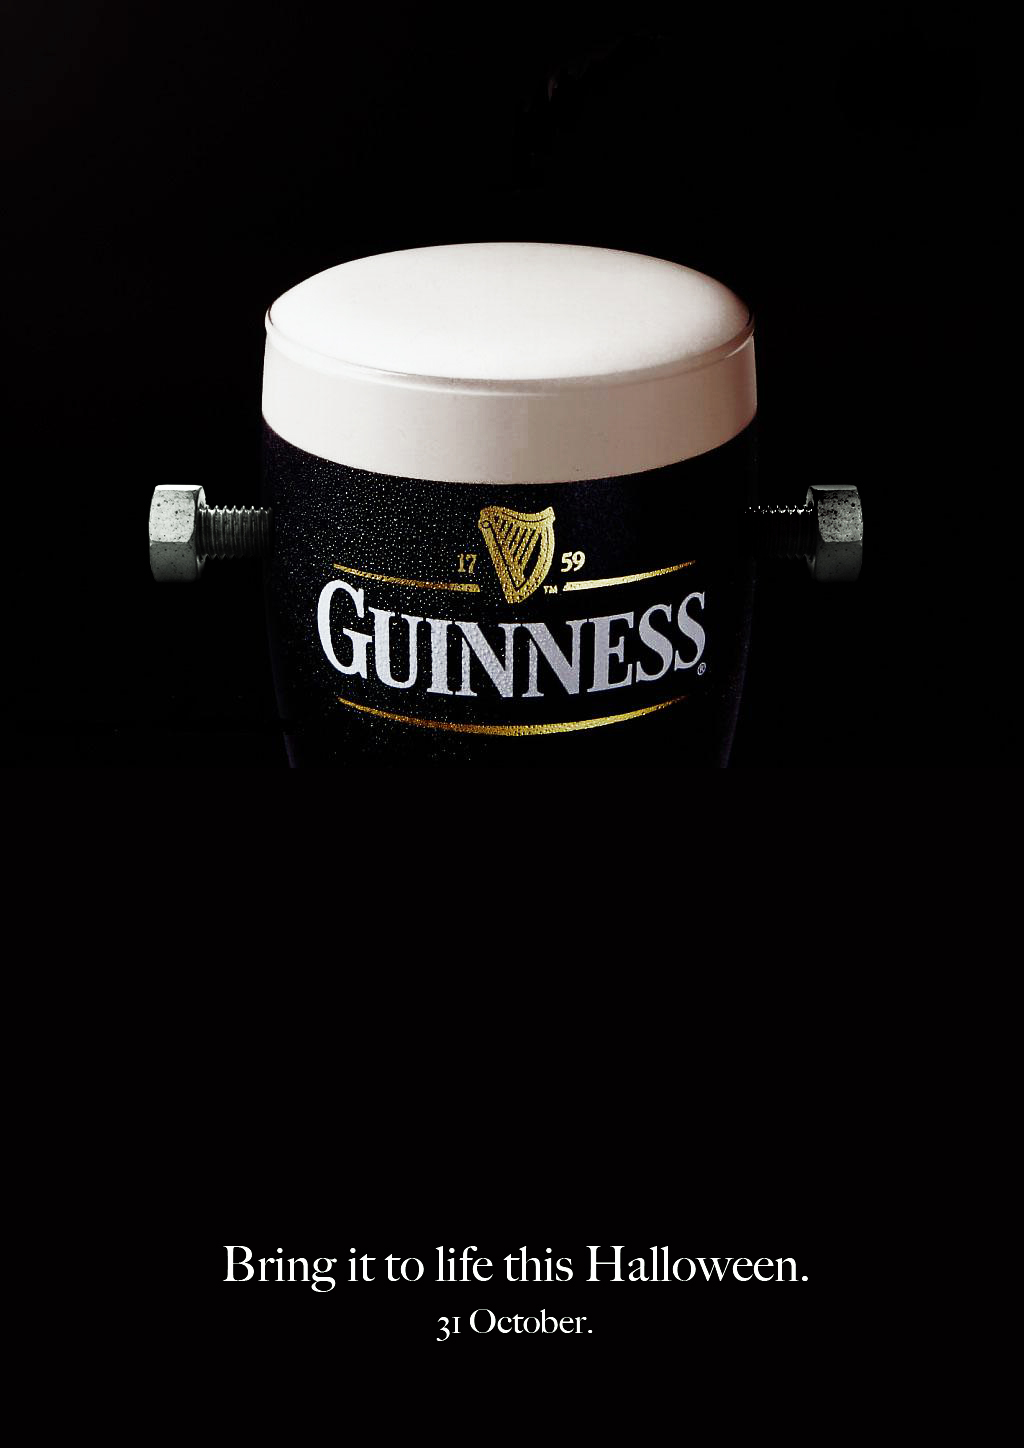 Guinness Beer Halloween Ad 3 Creative Ads And More